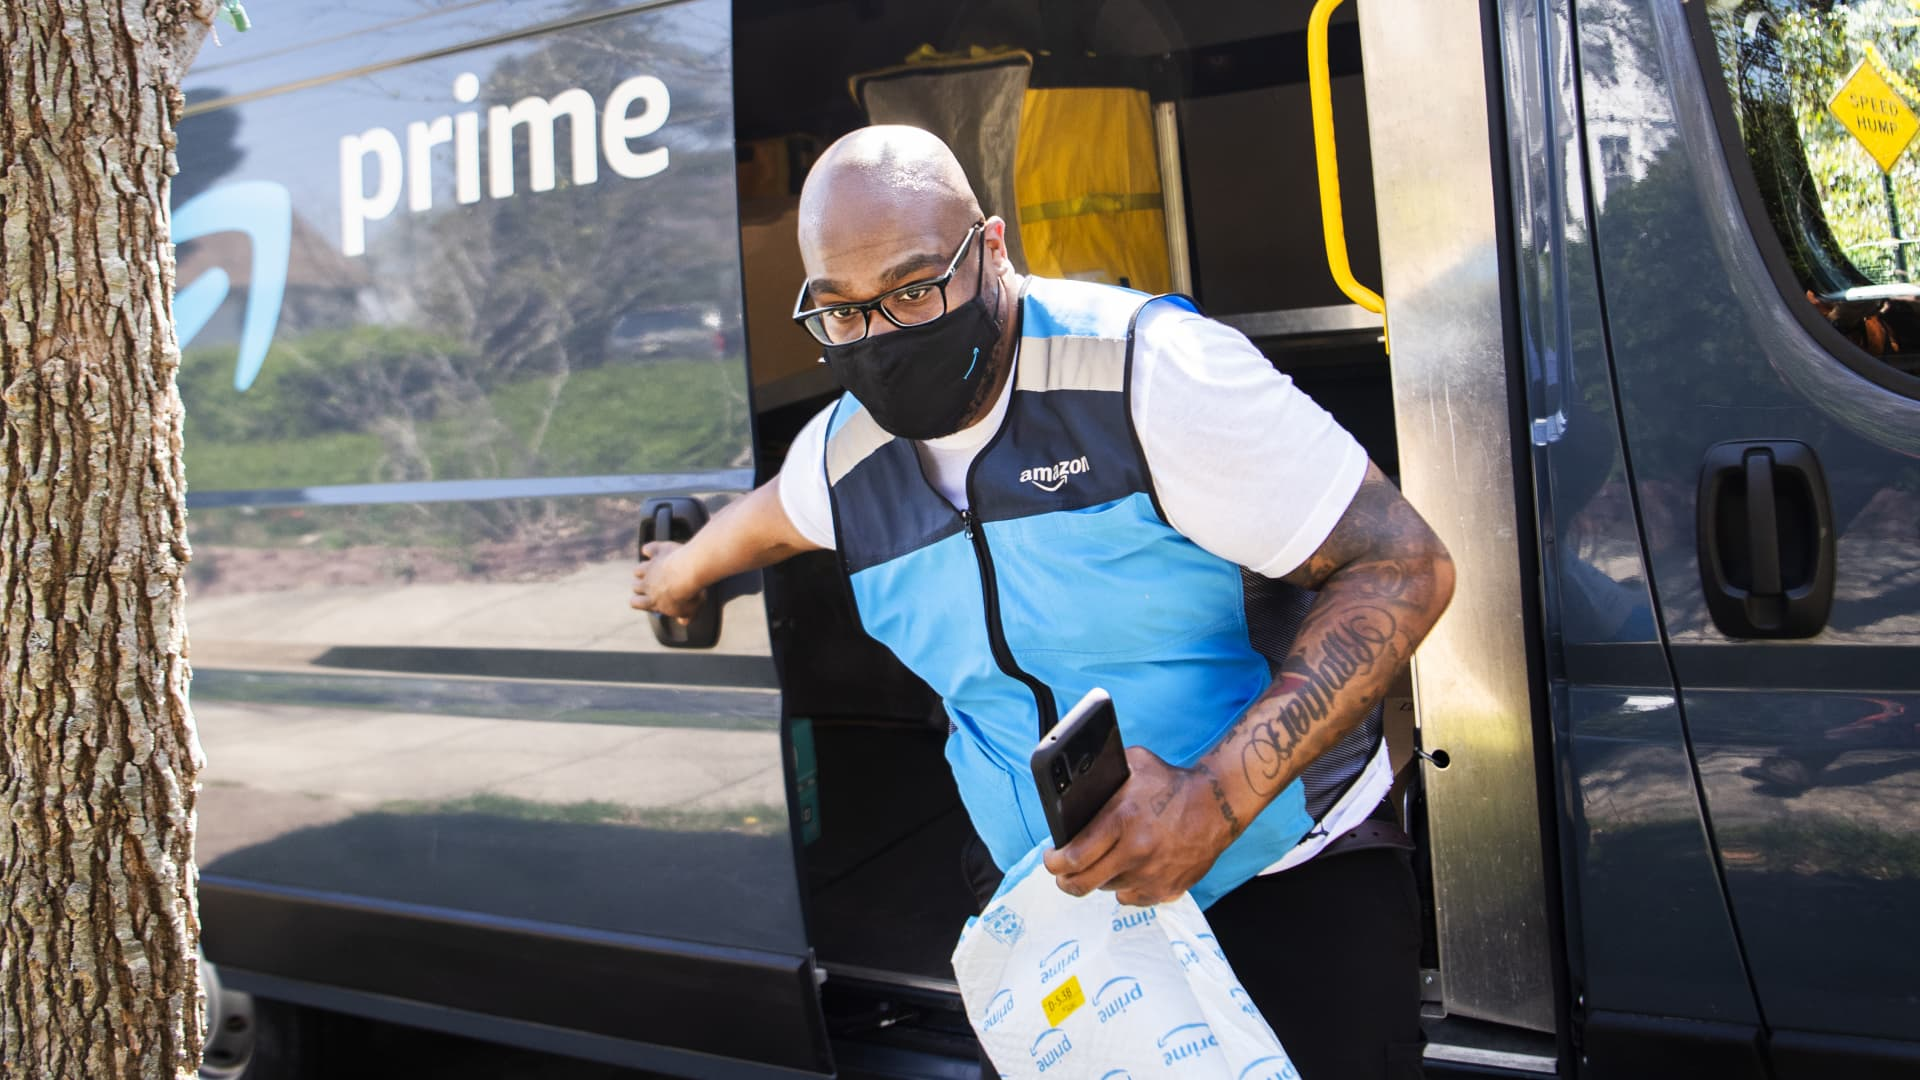 Amazon driver Shawndu Stackhouse delivers packages in Northeast Washington, D.C., on Tuesday, April 6, 2021.